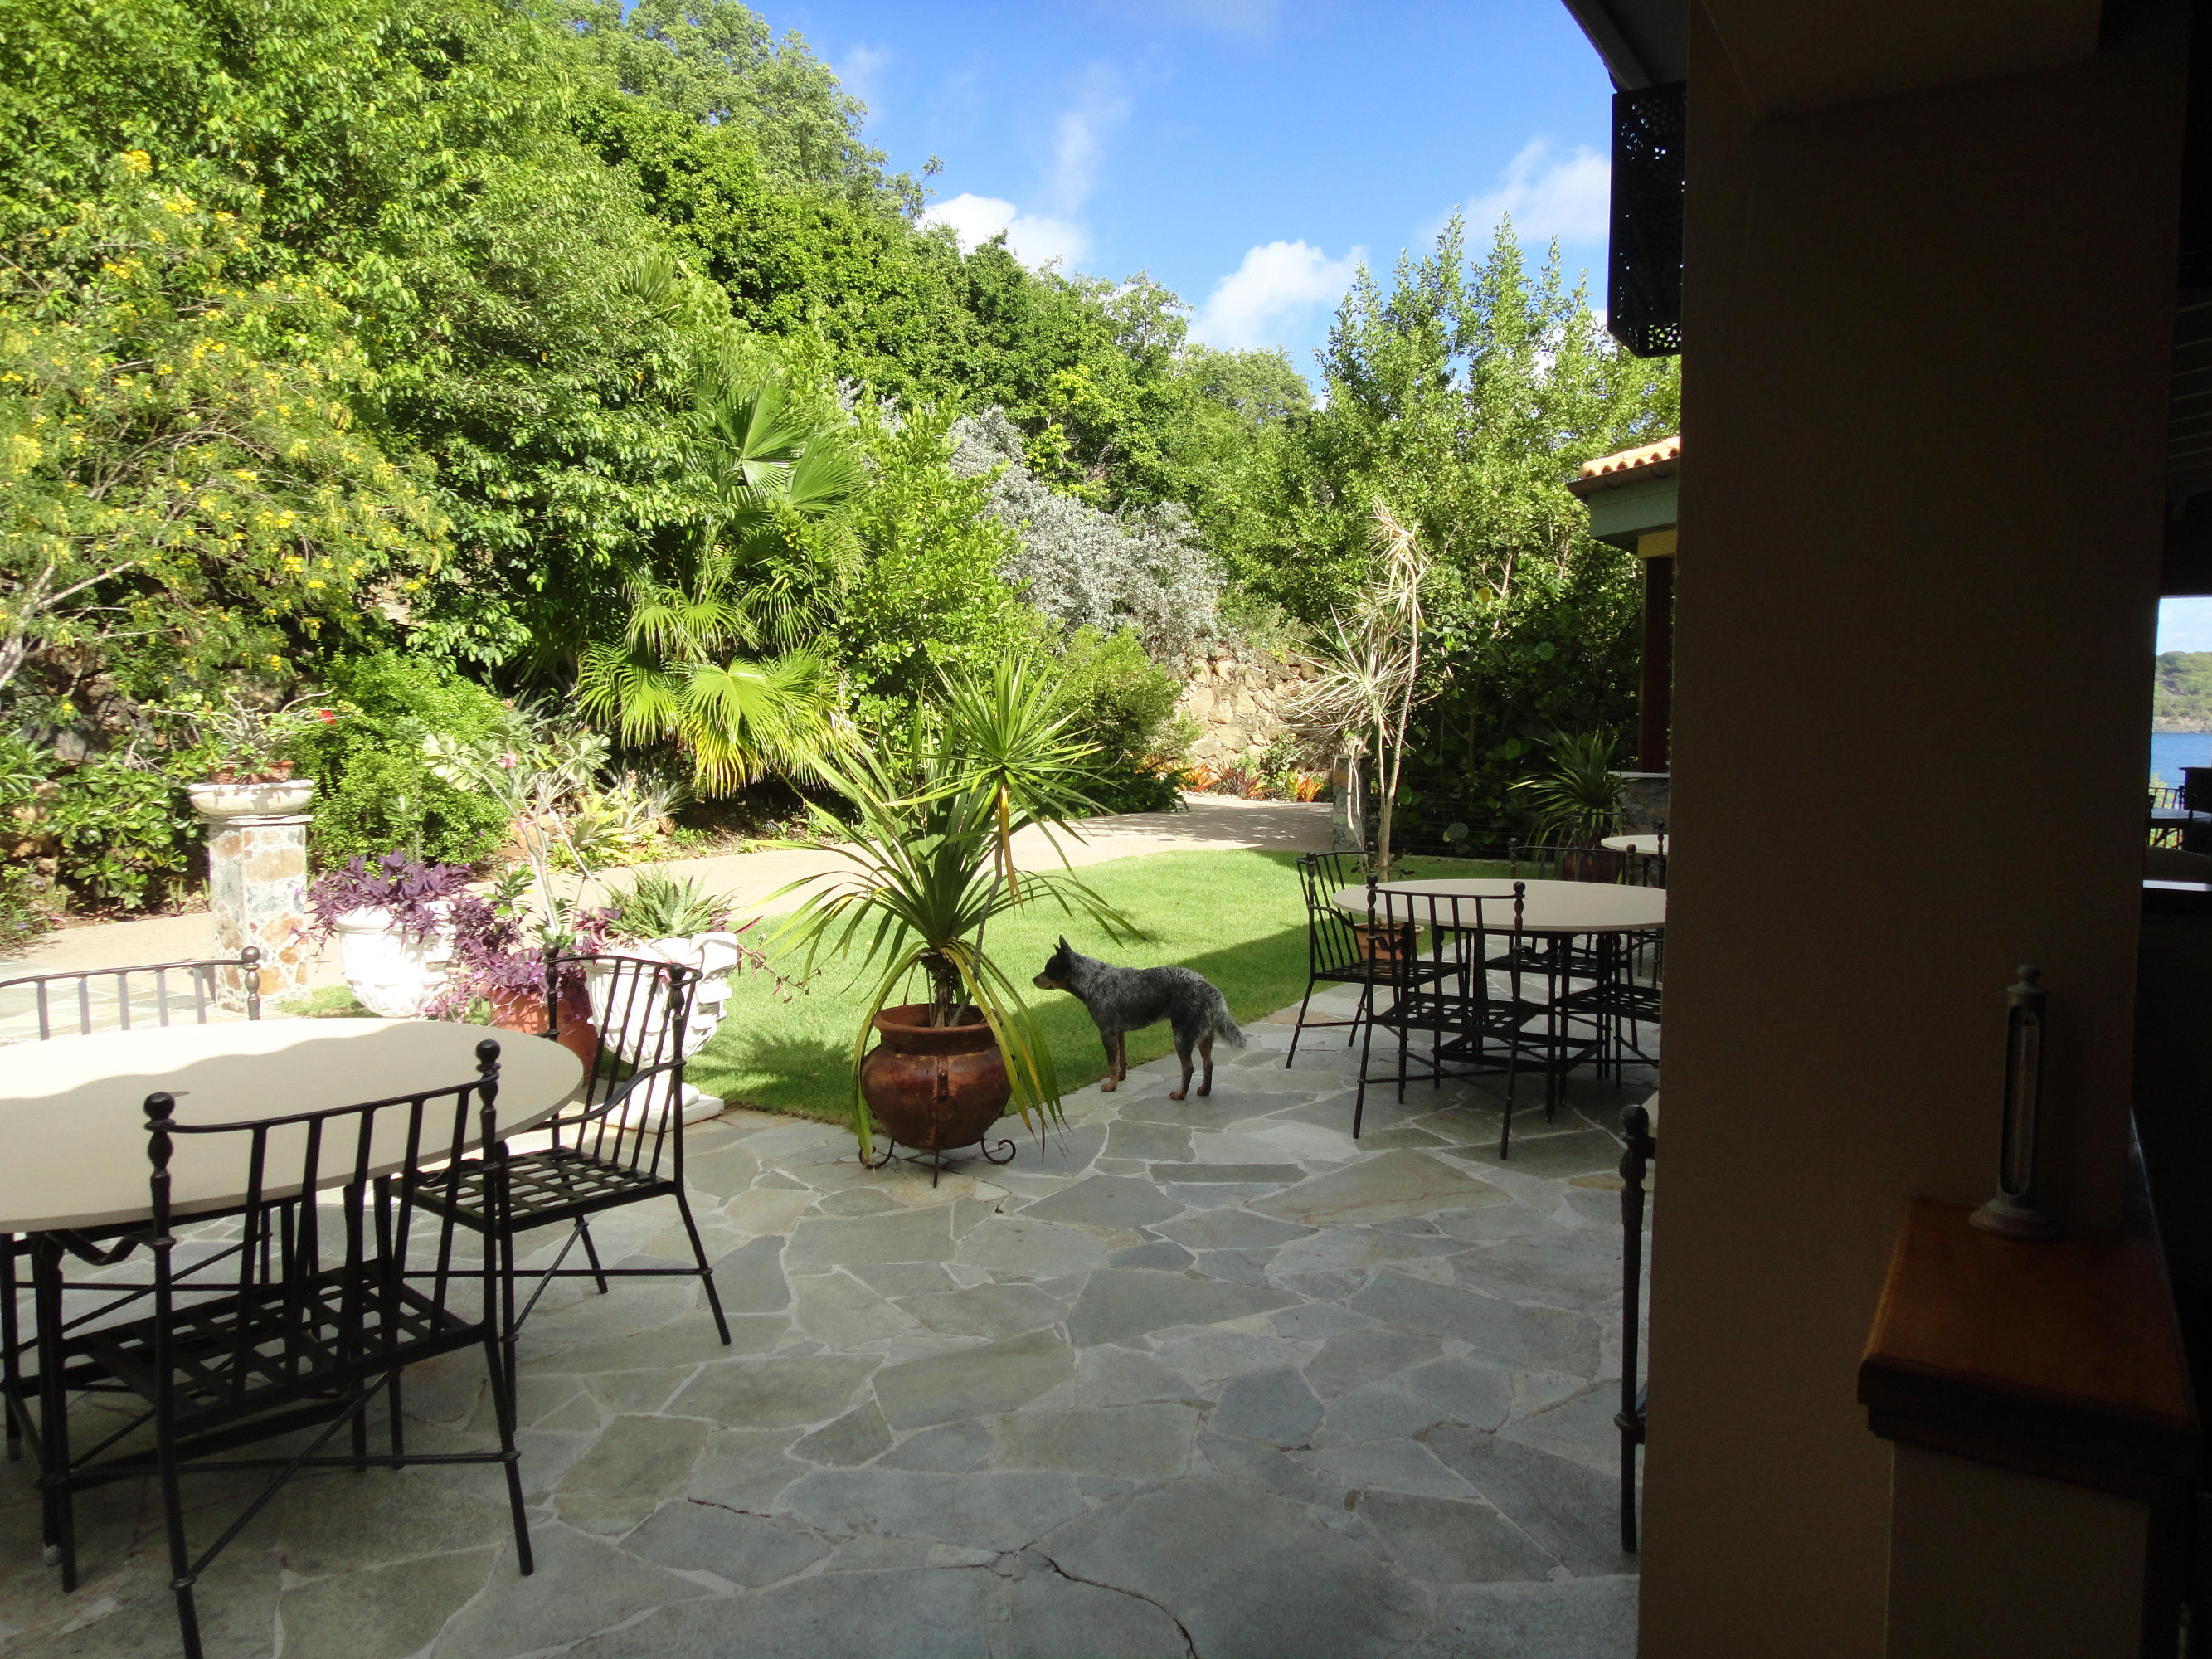 Outdoor living and lawn